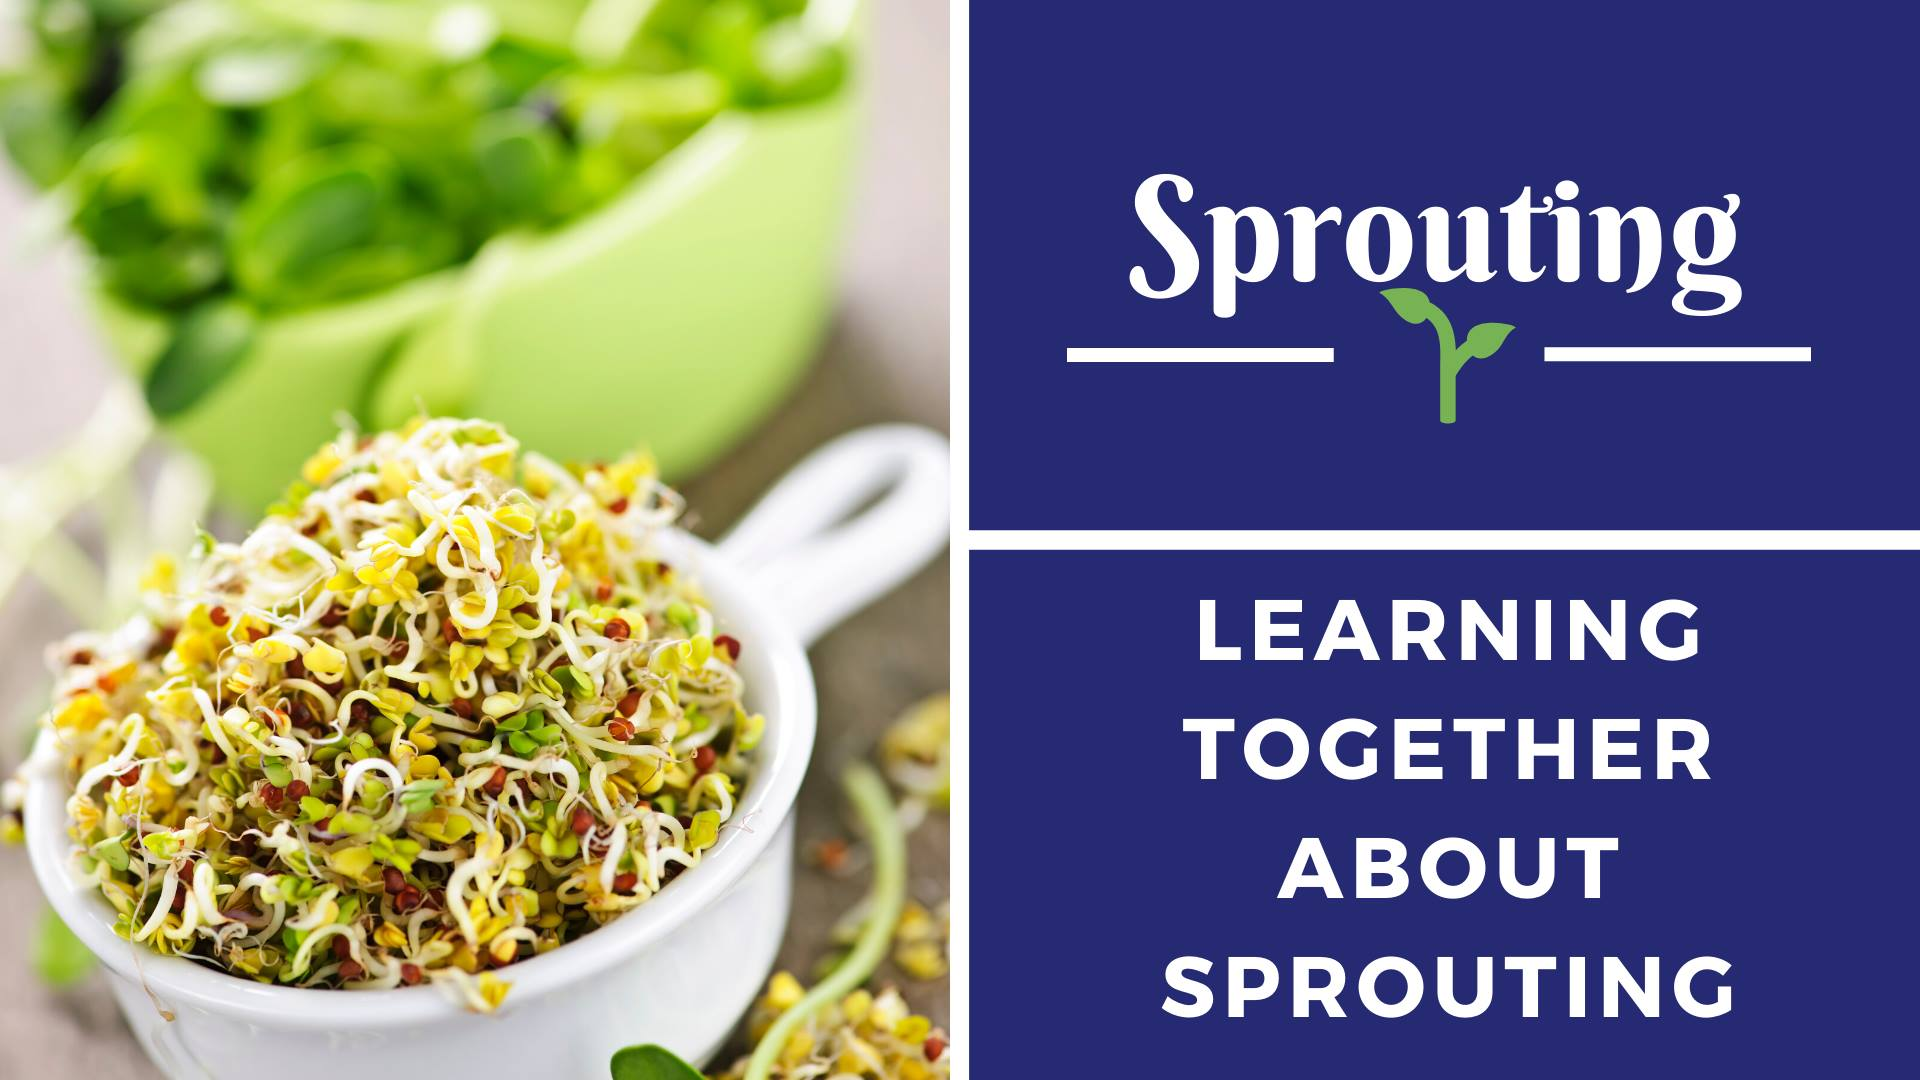 Eat loads of sprouts for long term health benefits